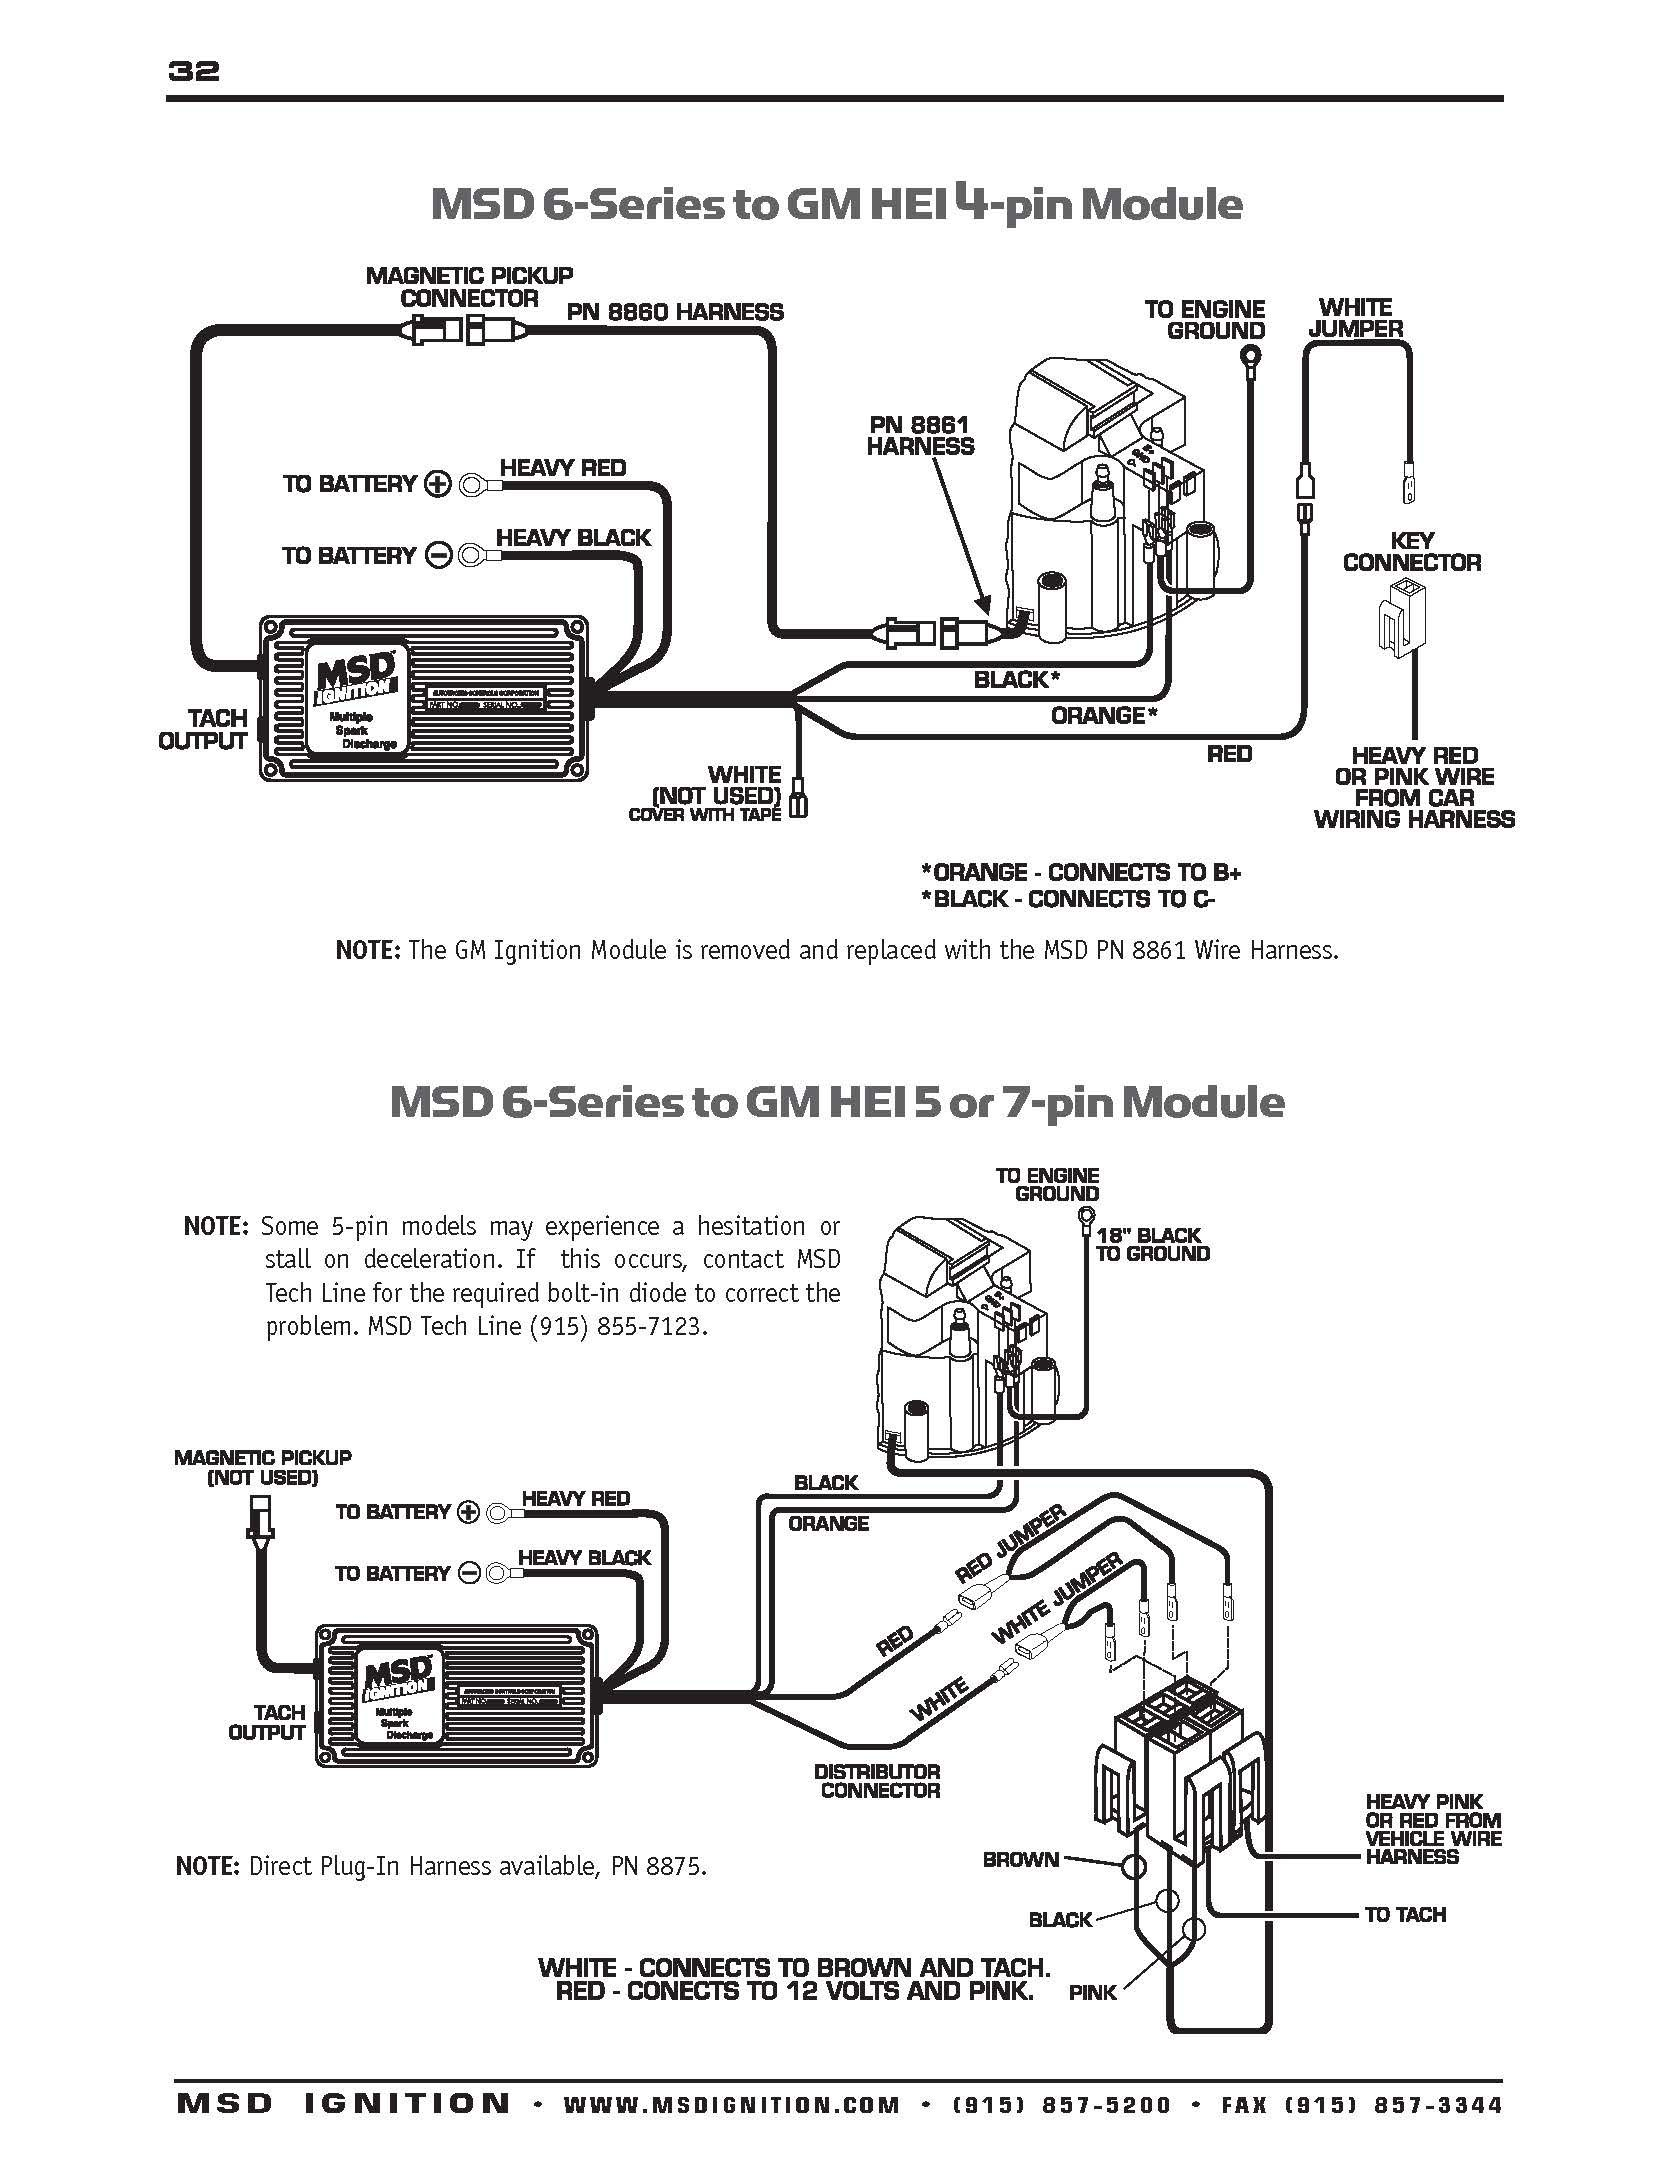 msd ignition wiring diagrams 1966 chevelle pinterest cars rh pinterest com 1966 chevelle ss wiring diagram 1966 chevelle ss wiring diagram